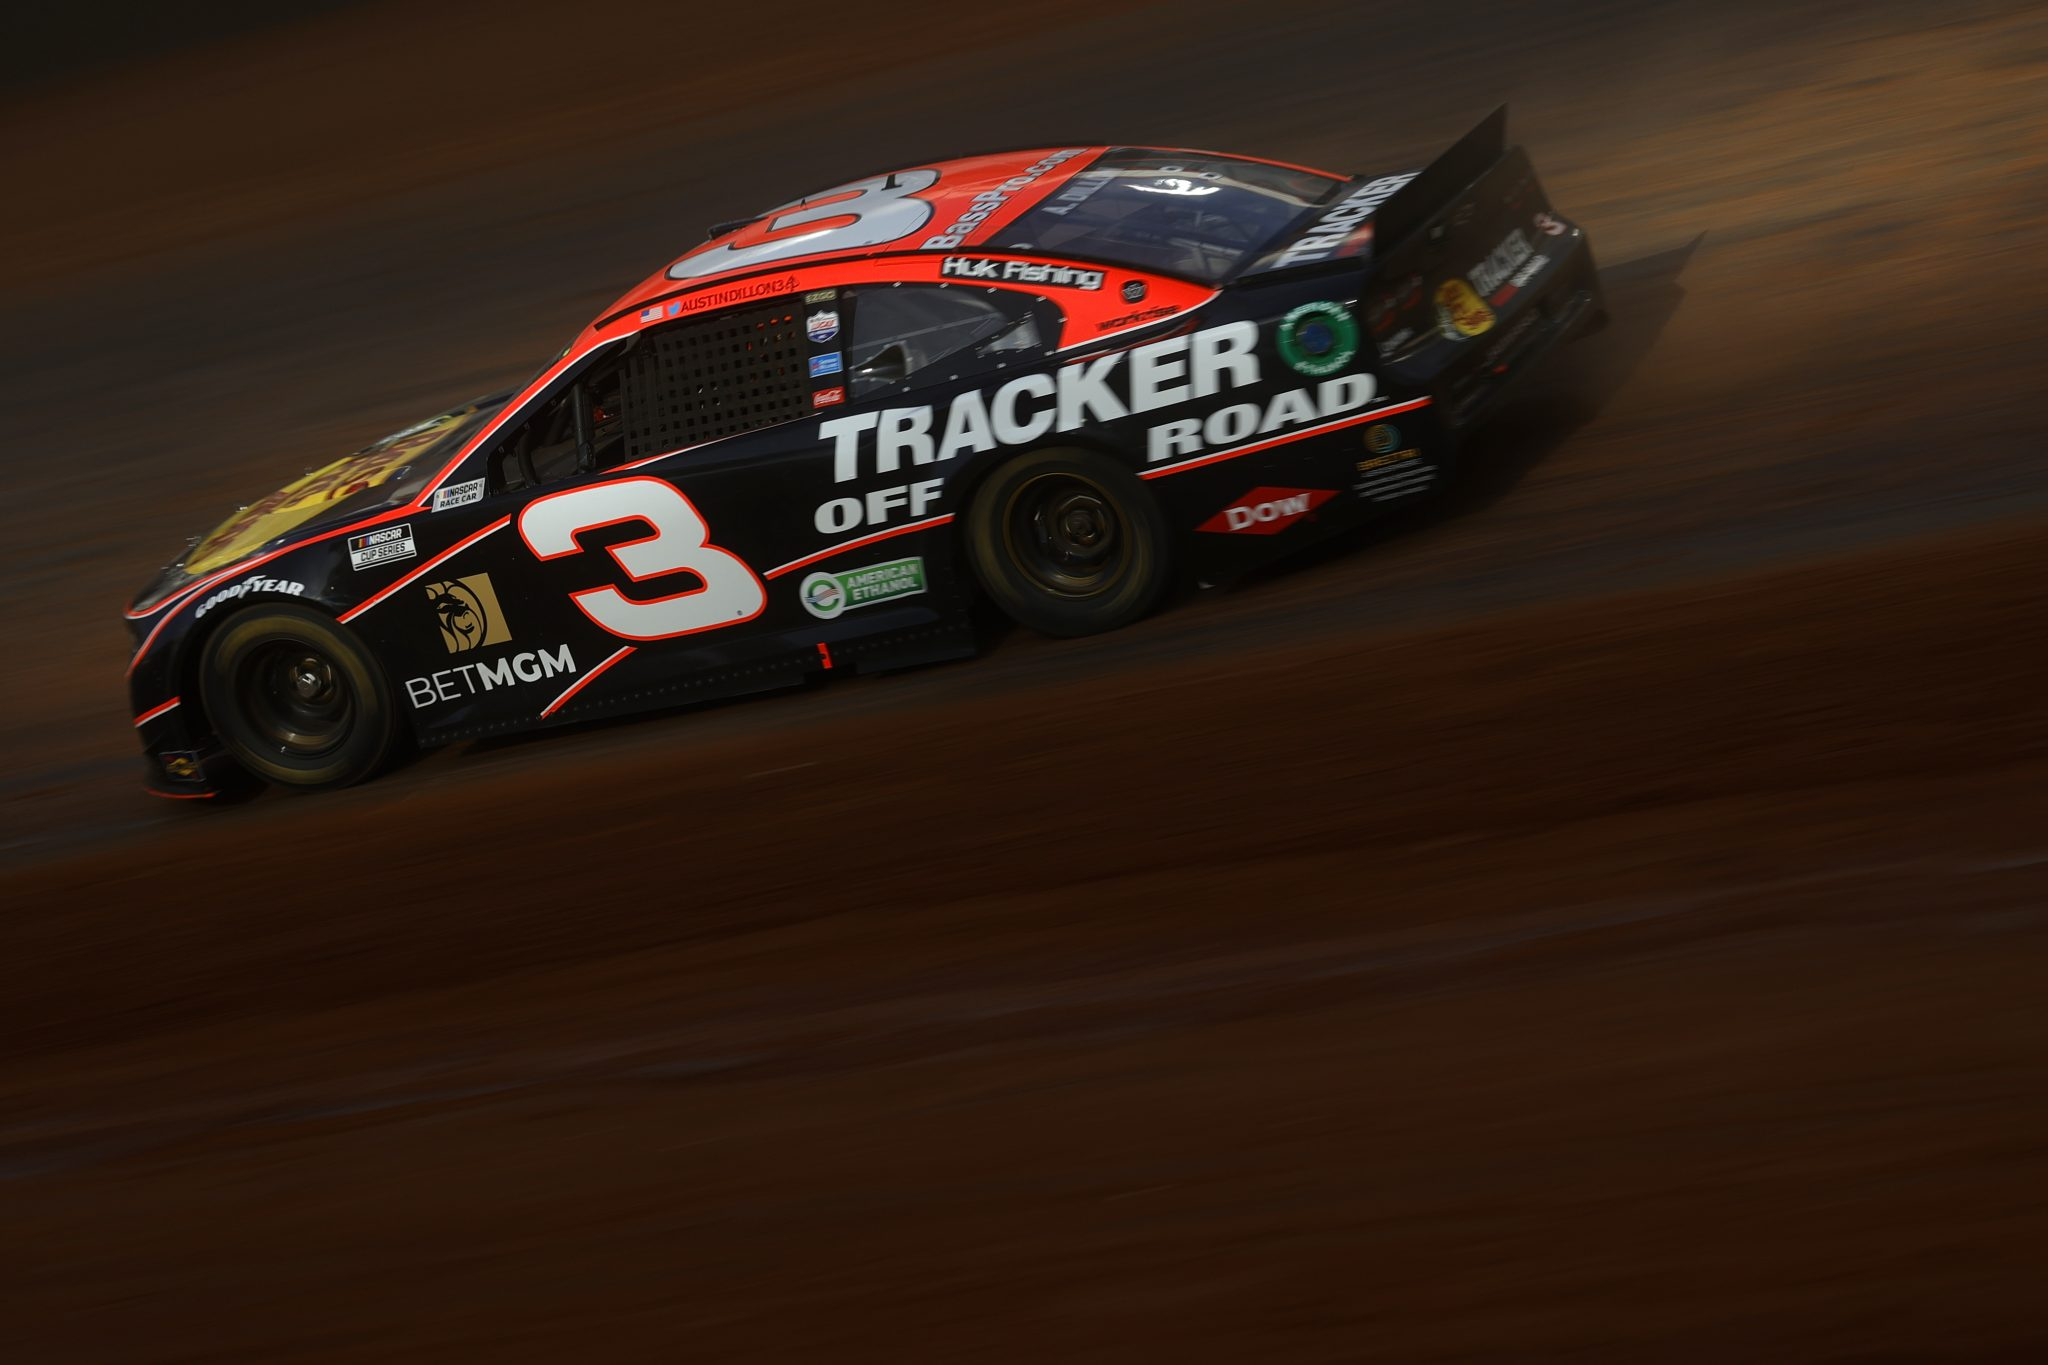 BRISTOL, TENNESSEE - MARCH 26: Austin Dillon, driver of the #3 Bass Pro Shops/Tracker Off Road Chevrolet, drives during practice for the NASCAR Cup Series Food City Dirt Race at Bristol Motor Speedway on March 26, 2021 in Bristol, Tennessee. (Photo by Chris Graythen/Getty Images)   Getty Images